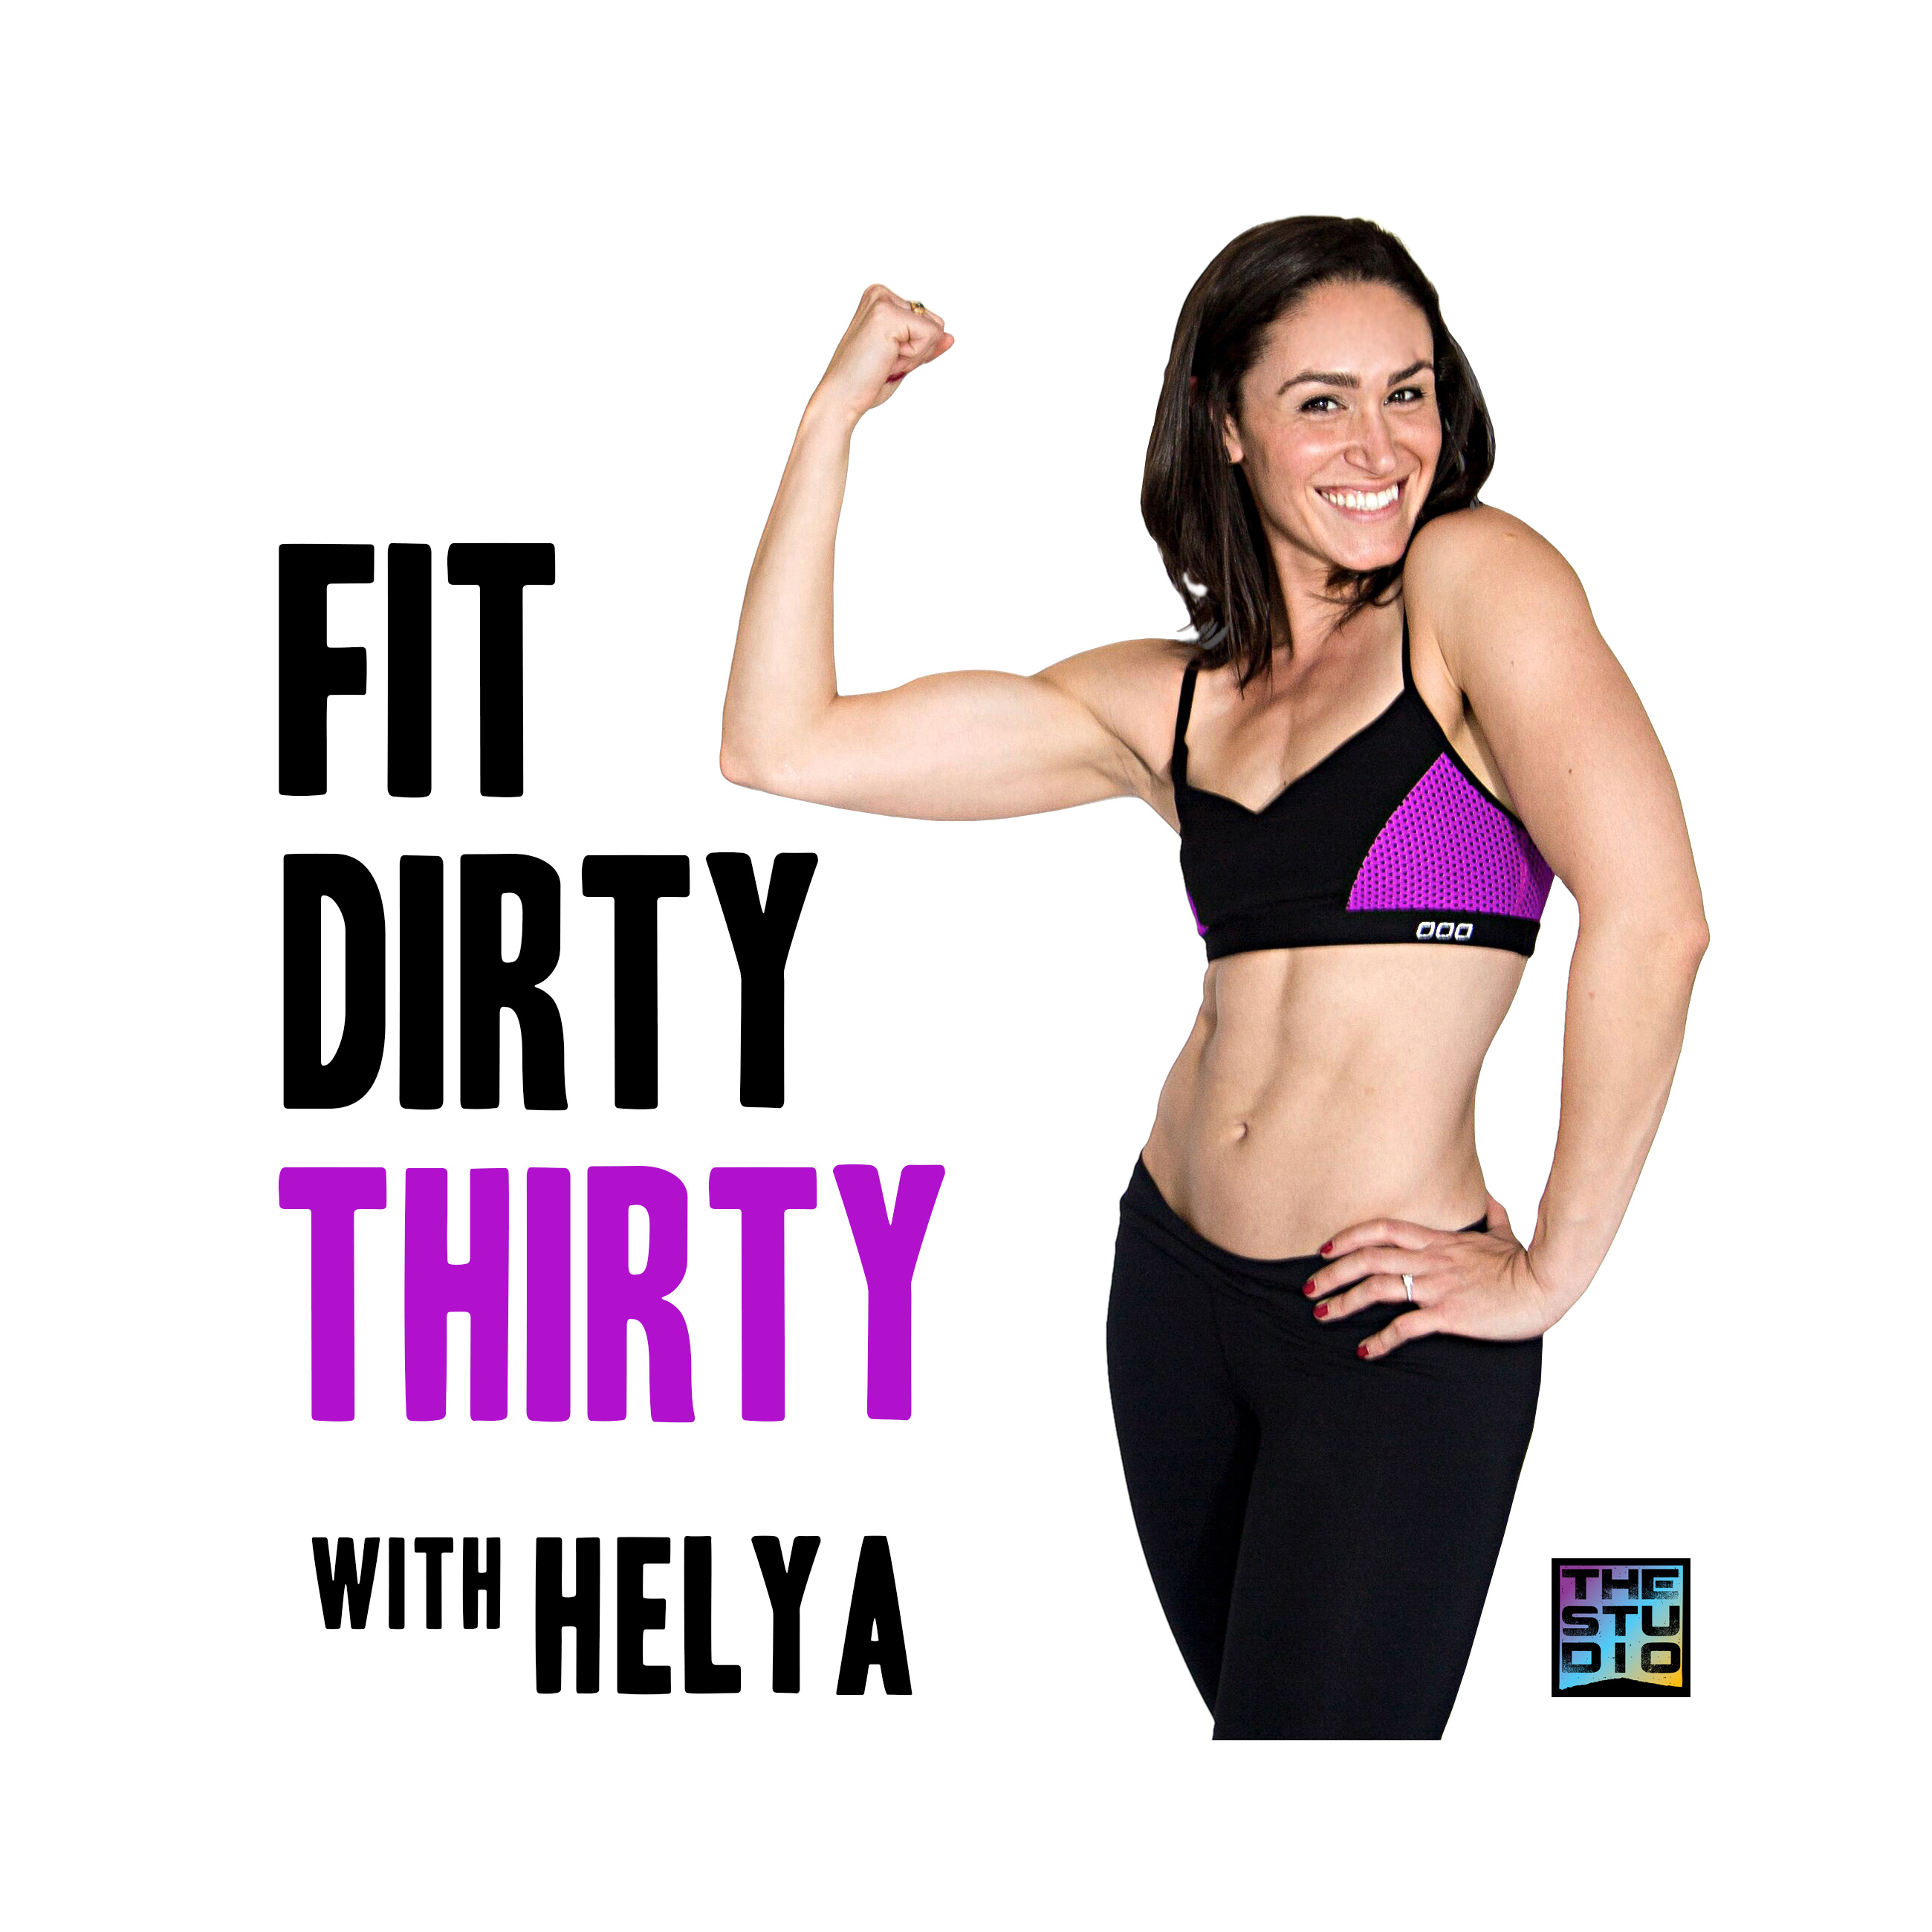 fit-dirty-thirty-with-helya